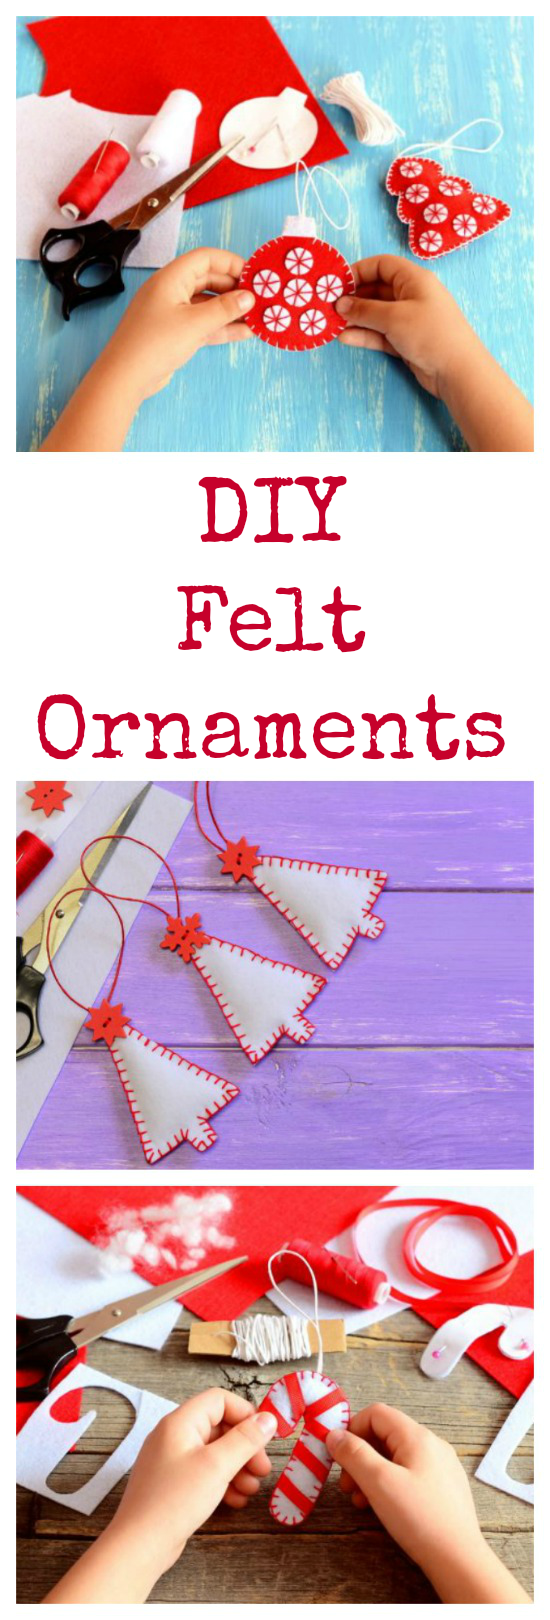 44+ Easy christmas ornaments for adults to make information